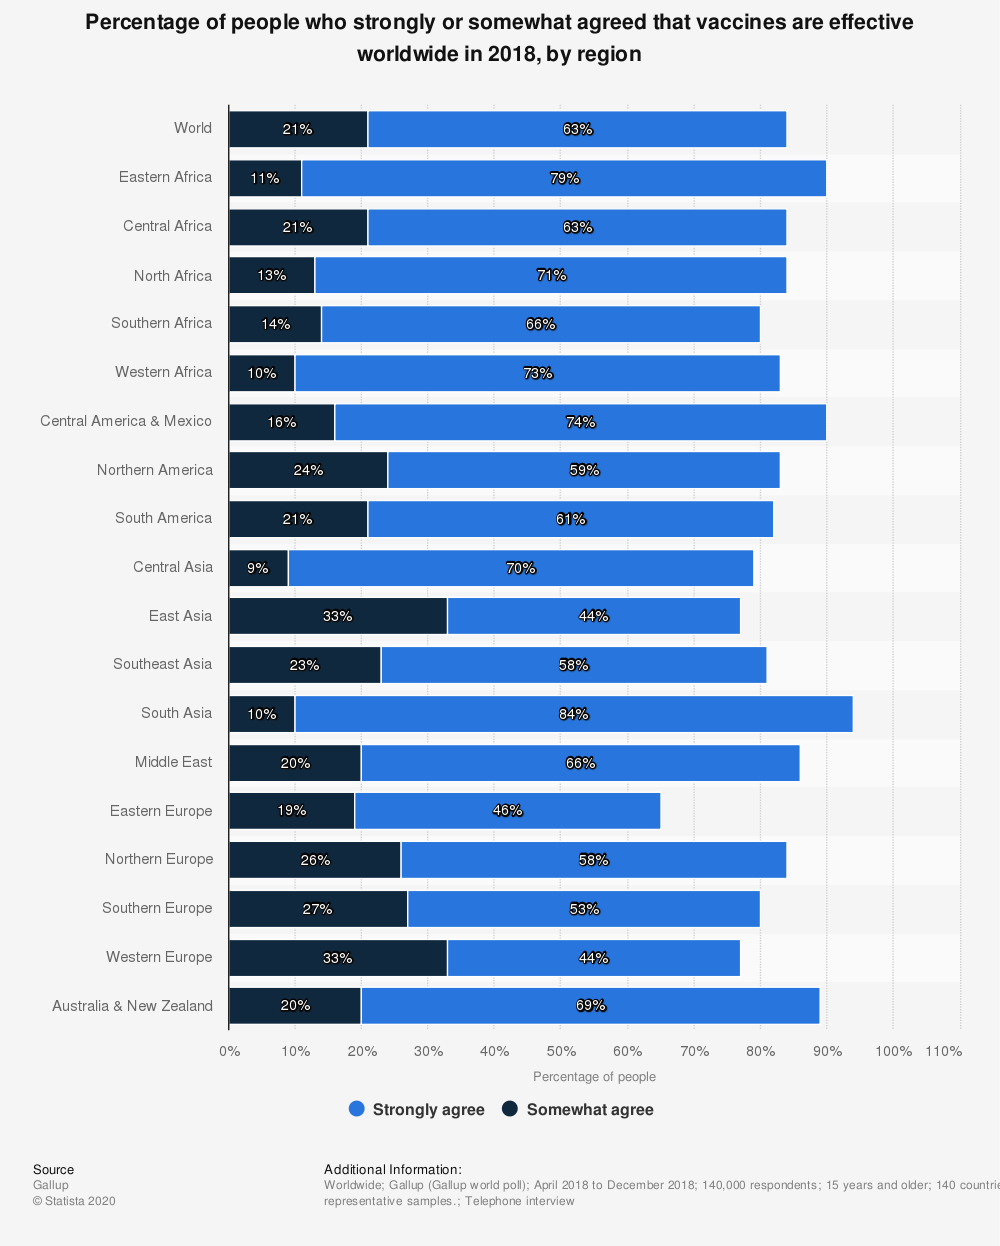 Statistic: Percentage of people who strongly or somewhat agreed that vaccines are effective worldwide in 2018, by region  | Statista